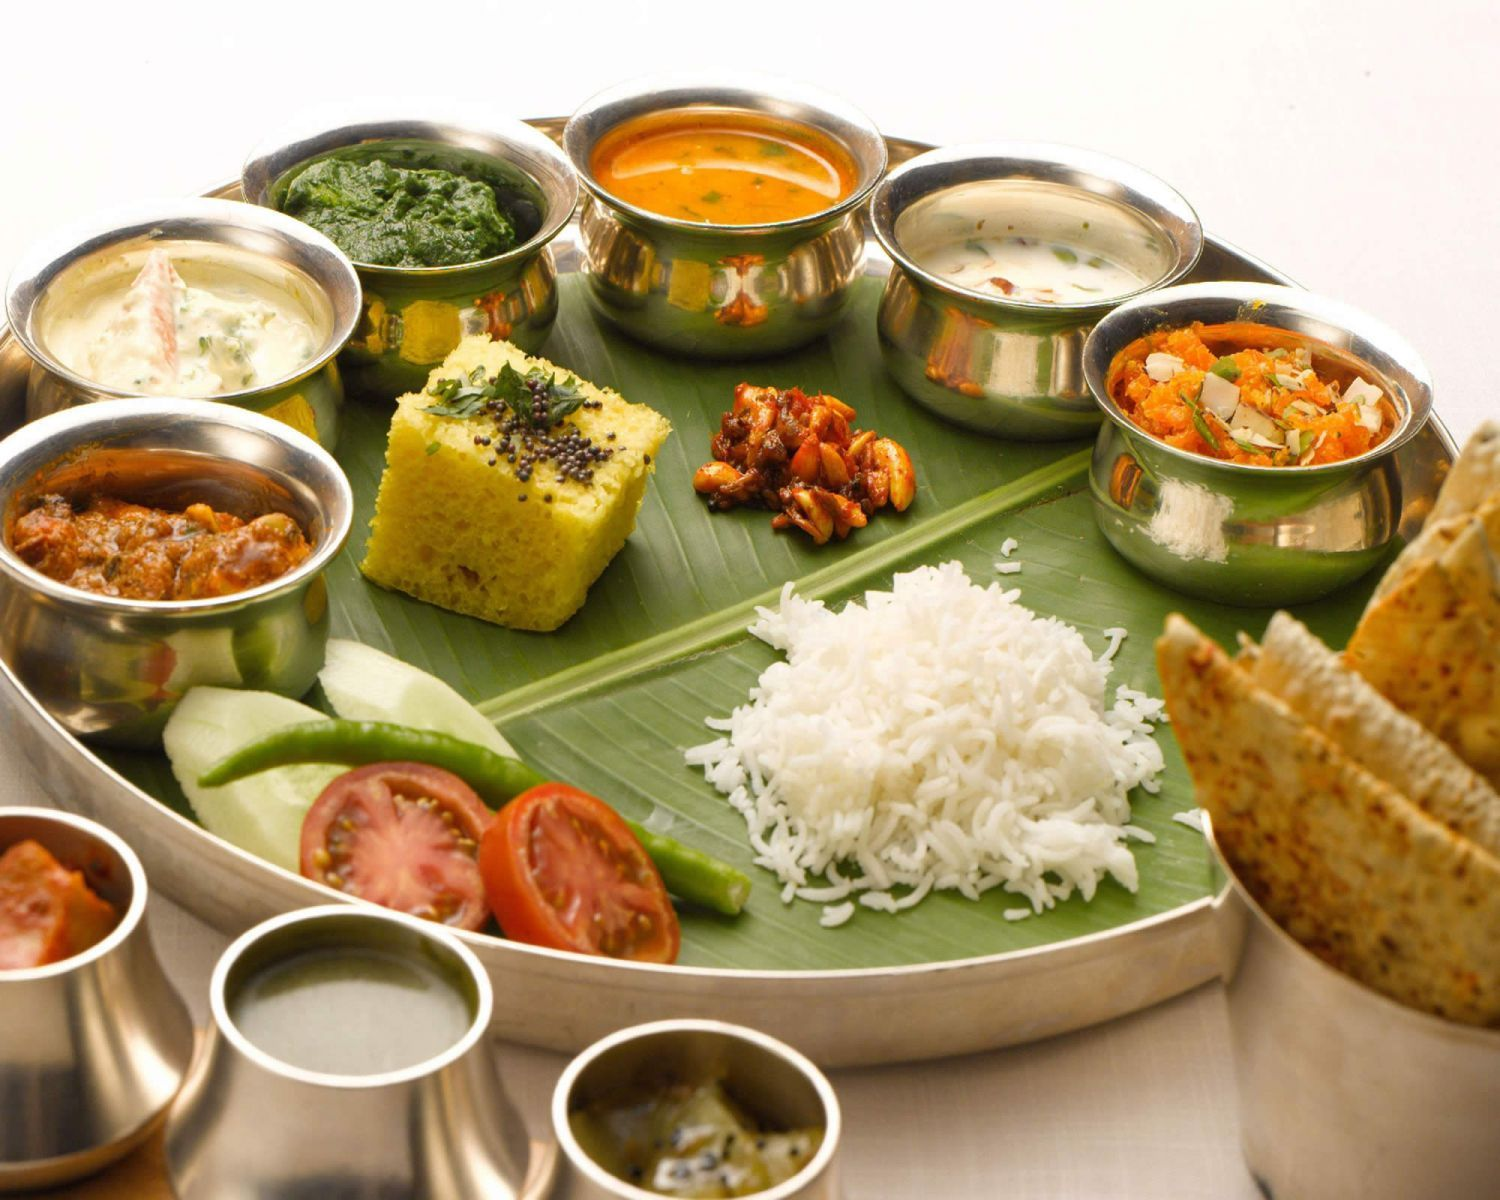 A thali is a delicious selection of Indian foods, with